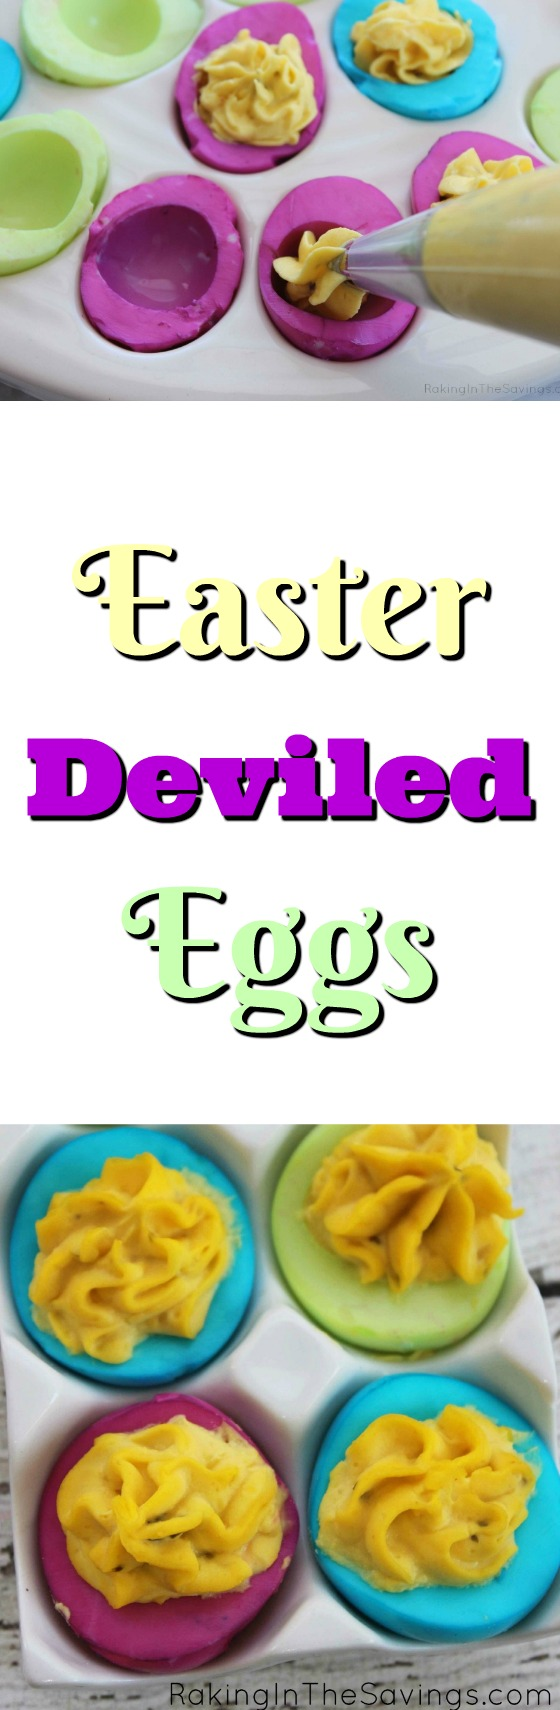 Looking for a fun and colorful way to do deviled eggs? Check out these easy Colorful Easter Deviled Eggs!